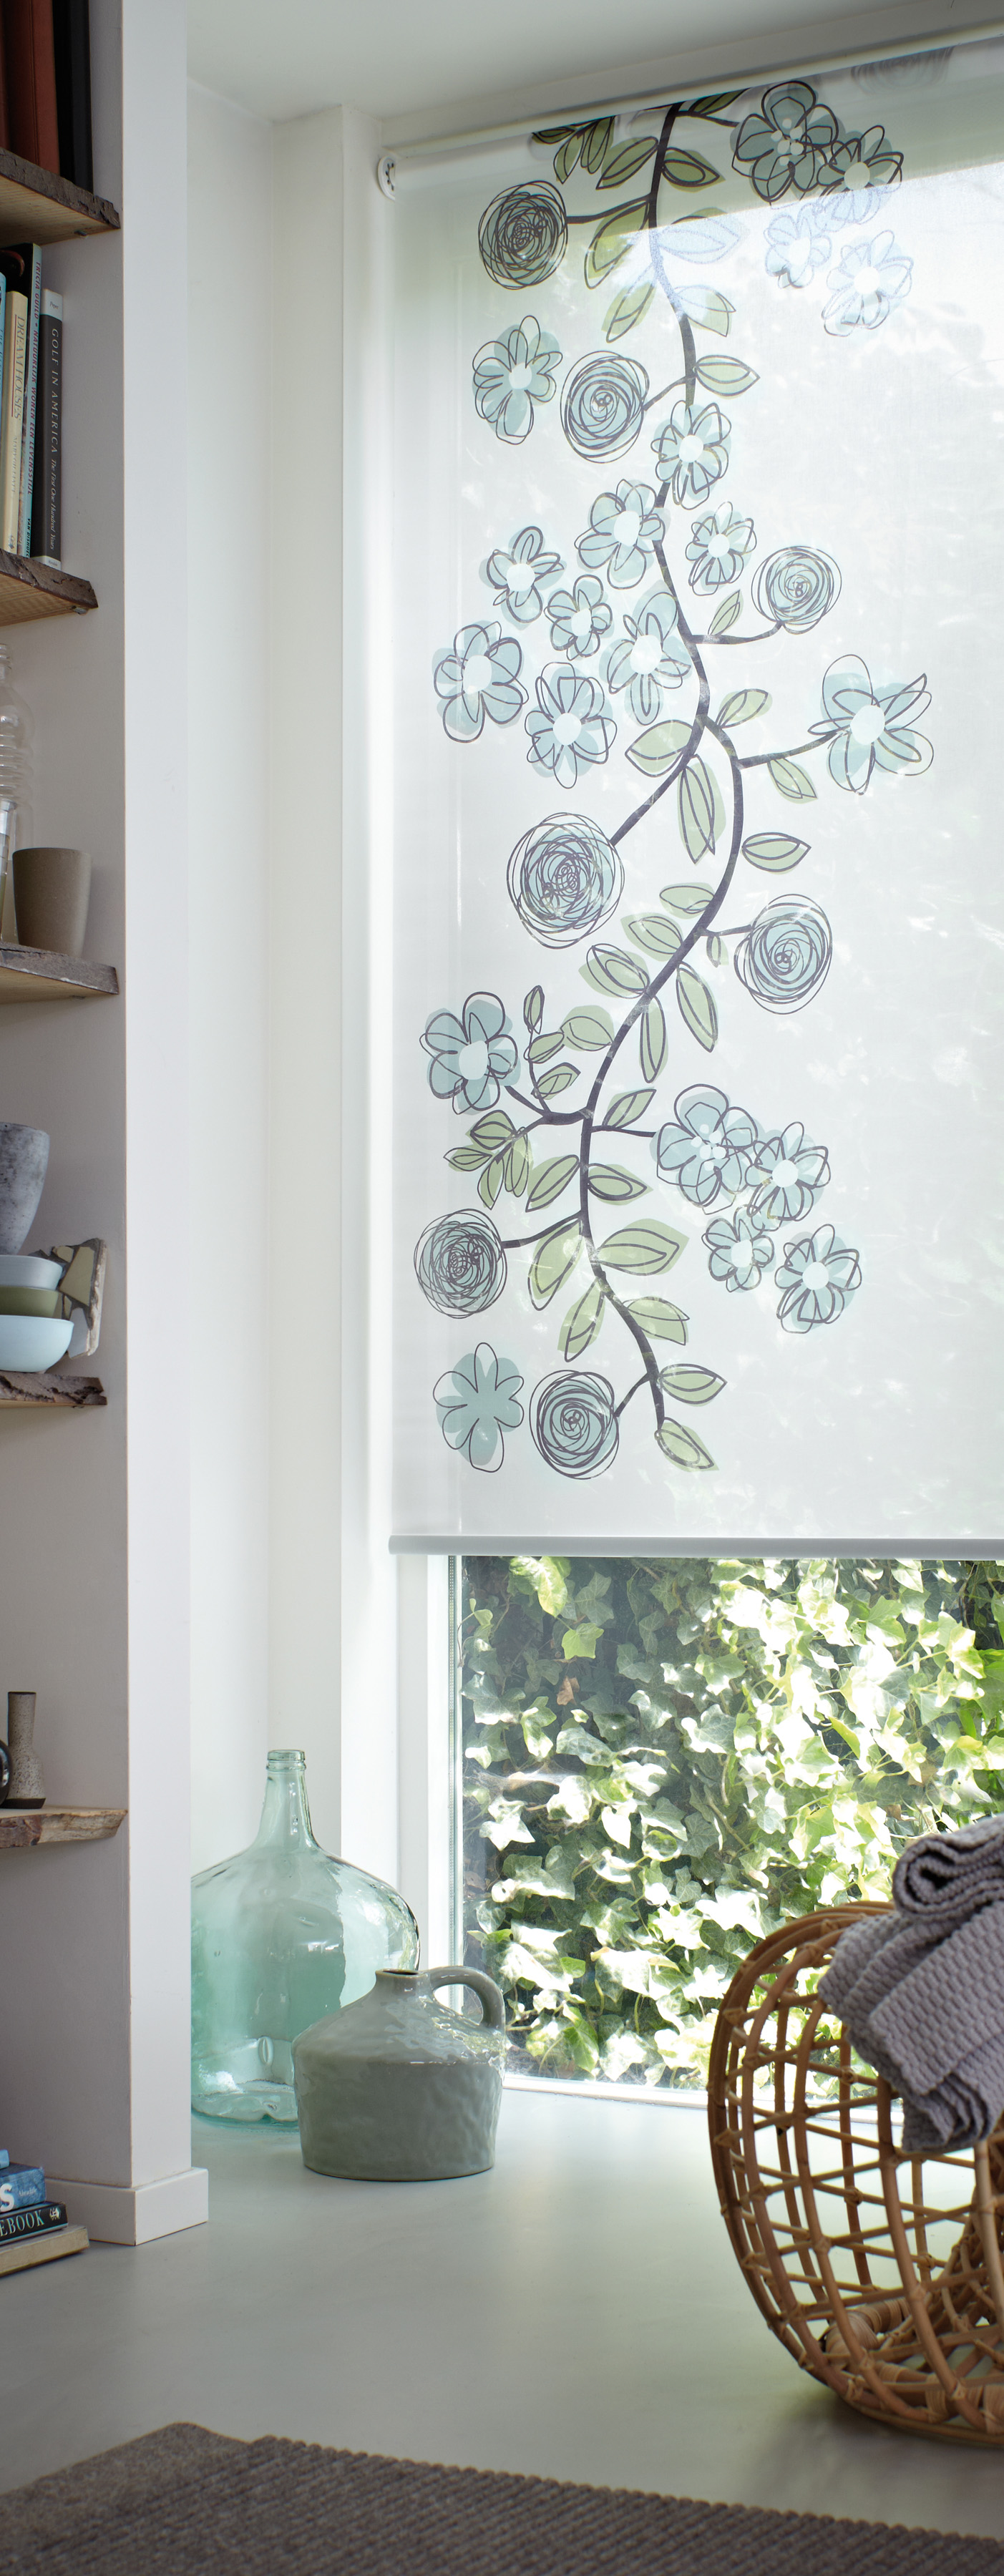 Budget Blinds Locations Lower Energy Costs With Stylish Cellular Shades And Solar Get